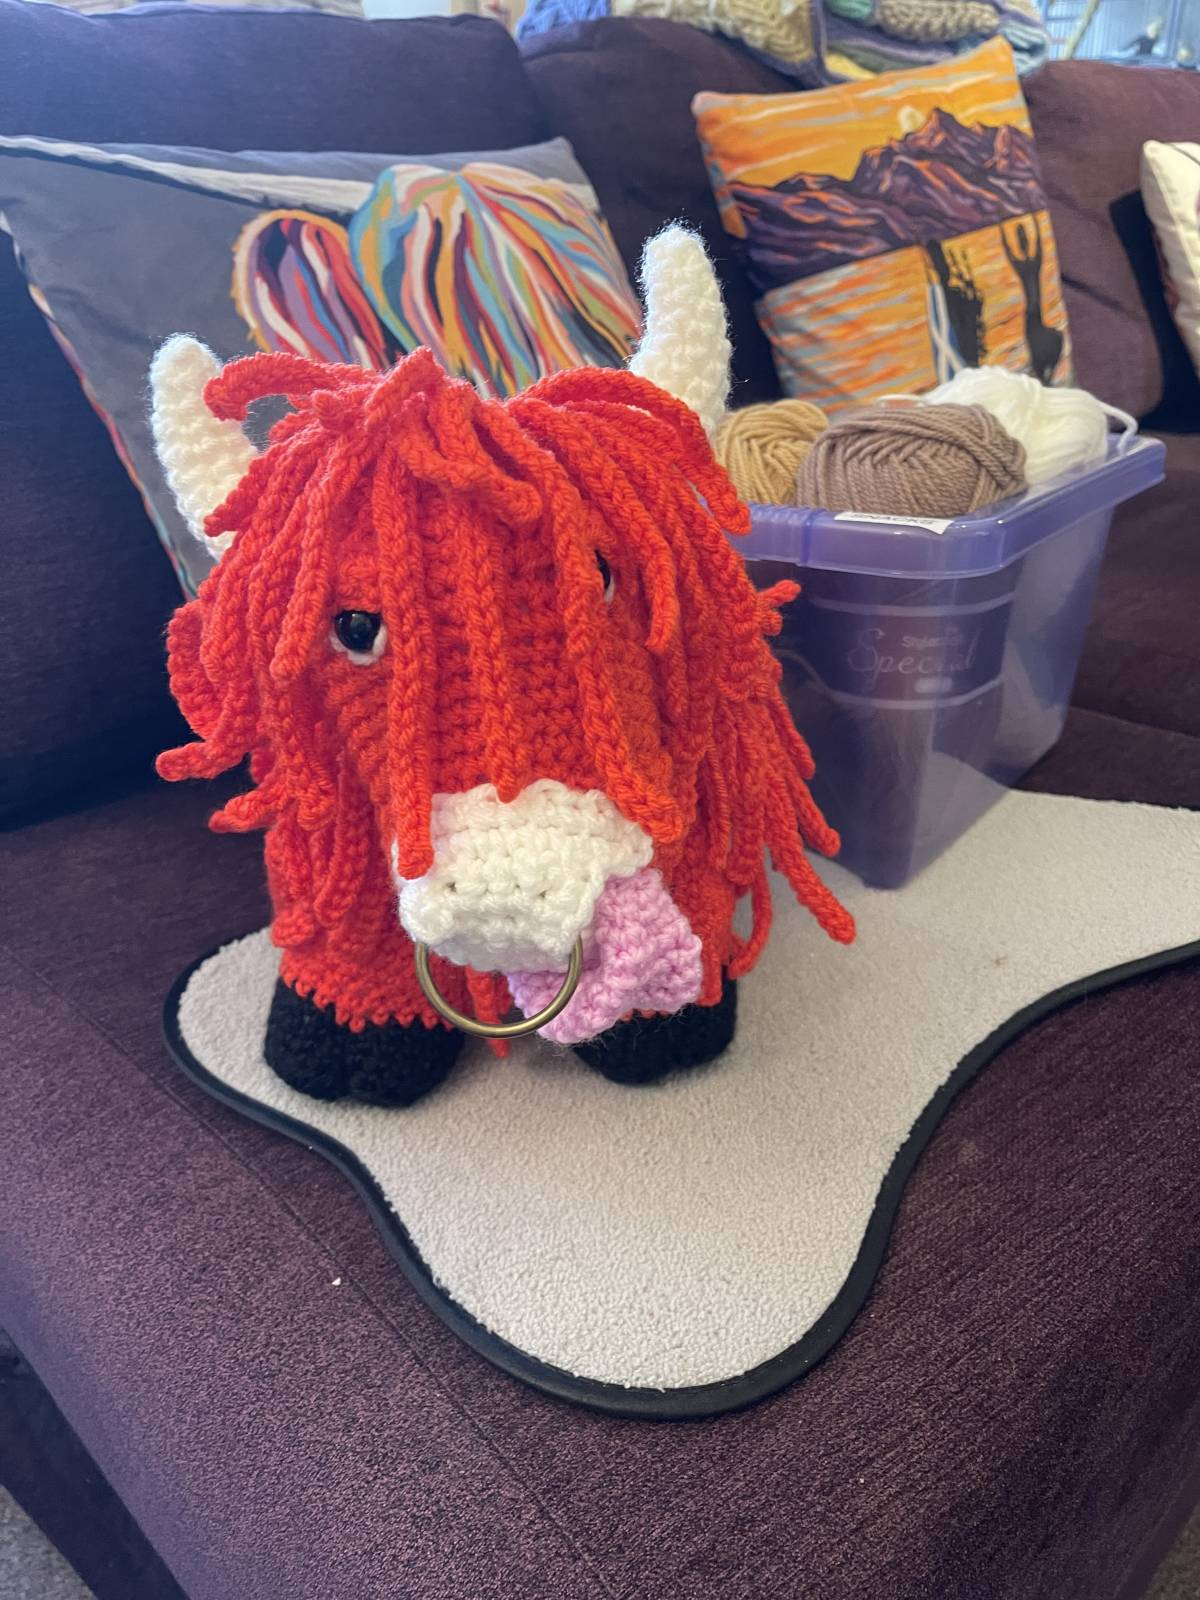 Amigurumi crochet highland cow pattern review by heather laing for cottontail & whiskers